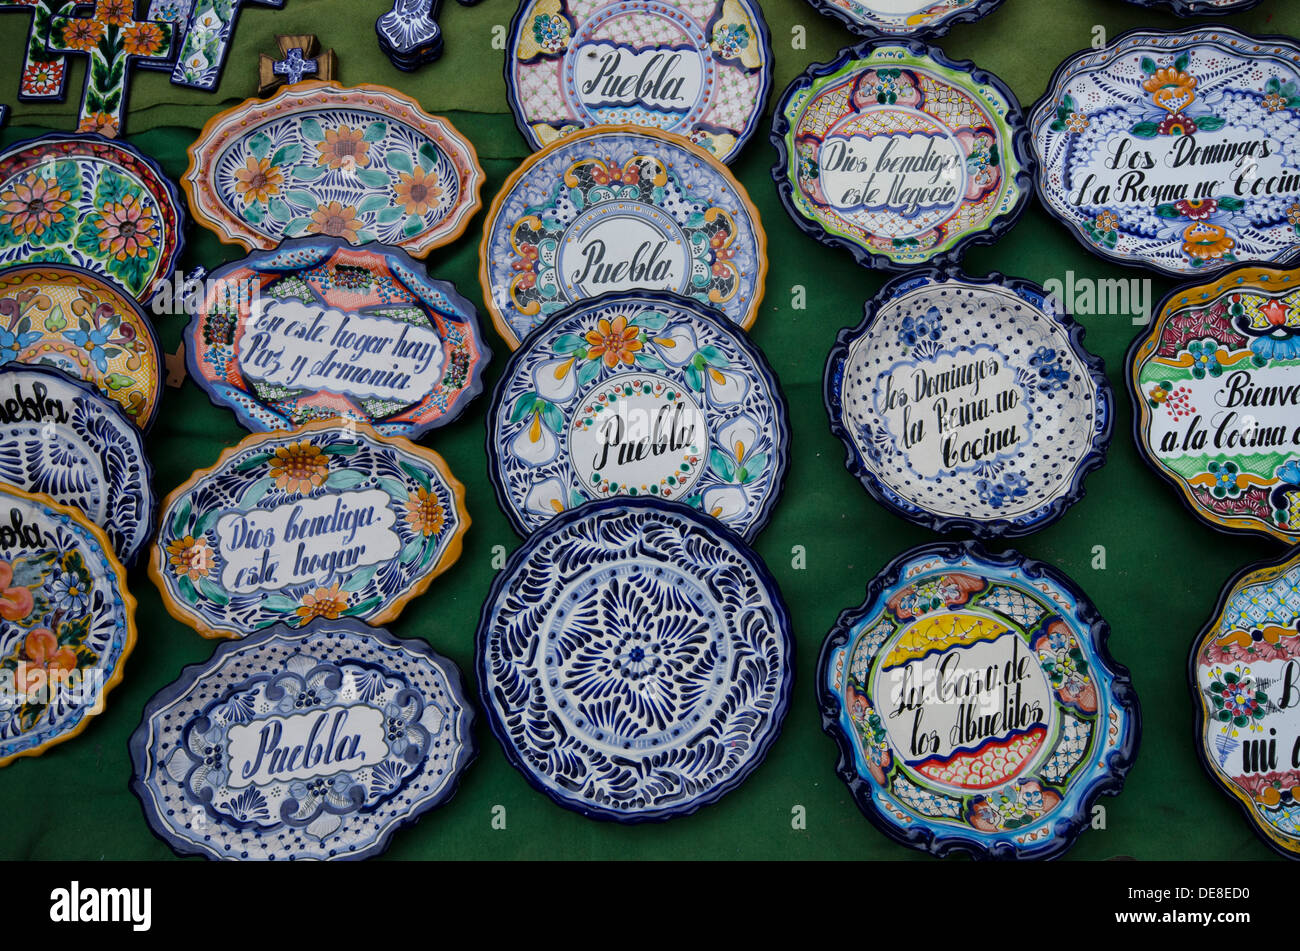 Plates For Sale >> A Selection Of Ornamental Decorative Plates For Sale In A